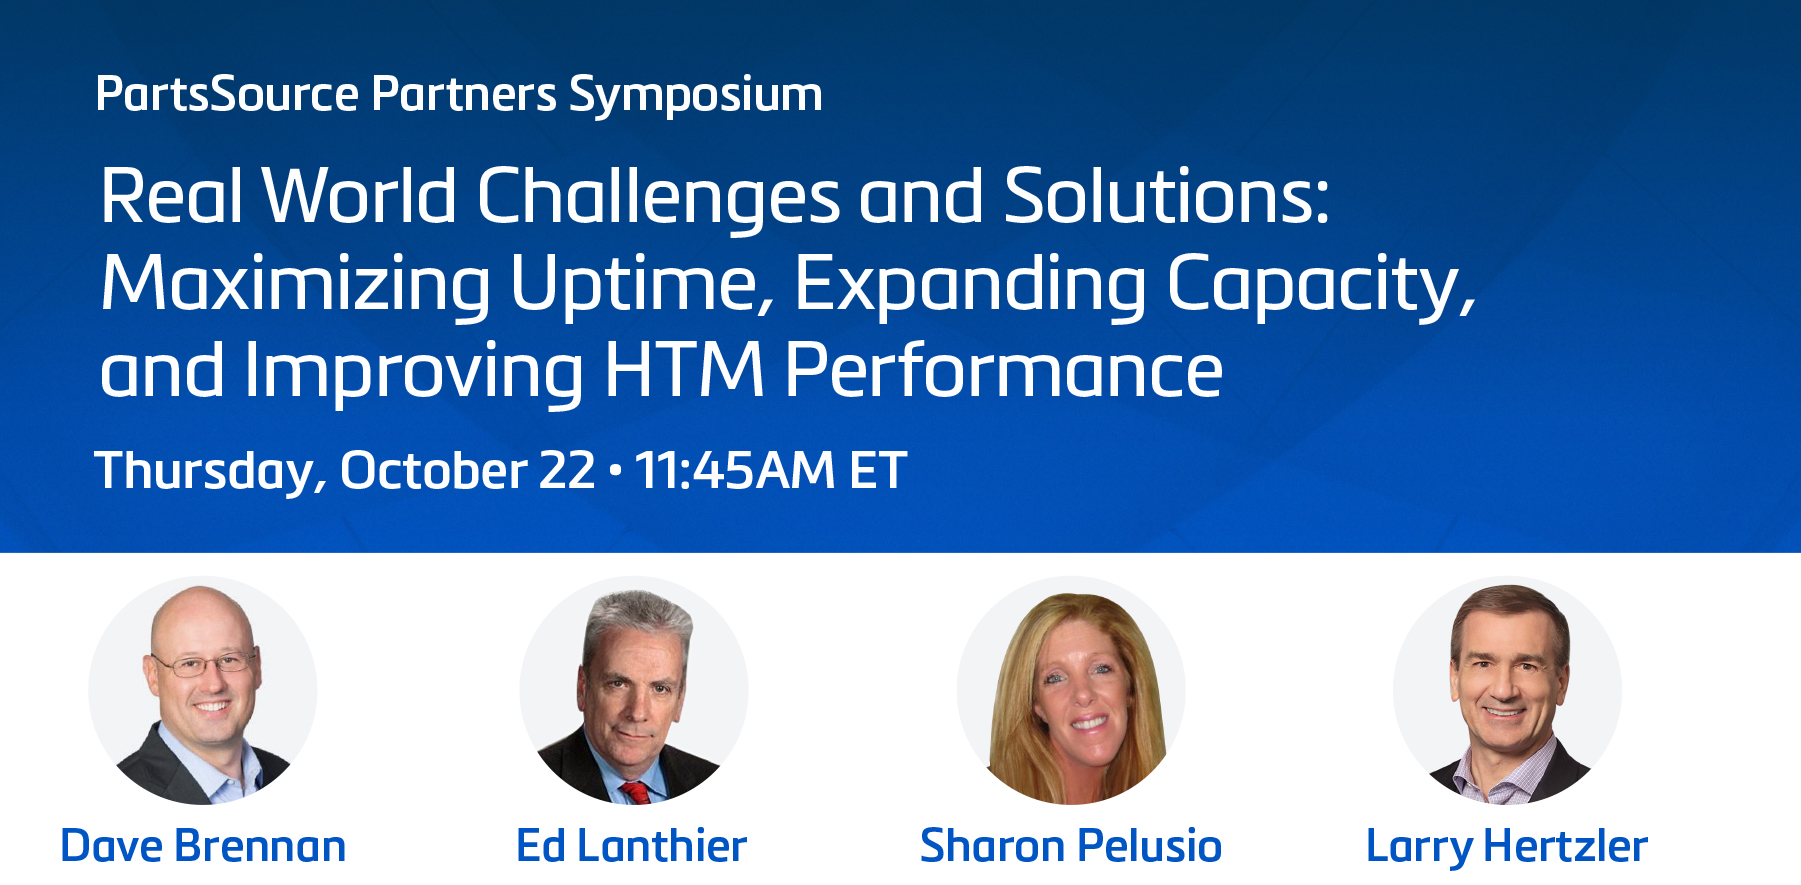 Real World Challenges and Solutions: Maximizing Uptime, Expanding Capacity, and Improving HTM Performance